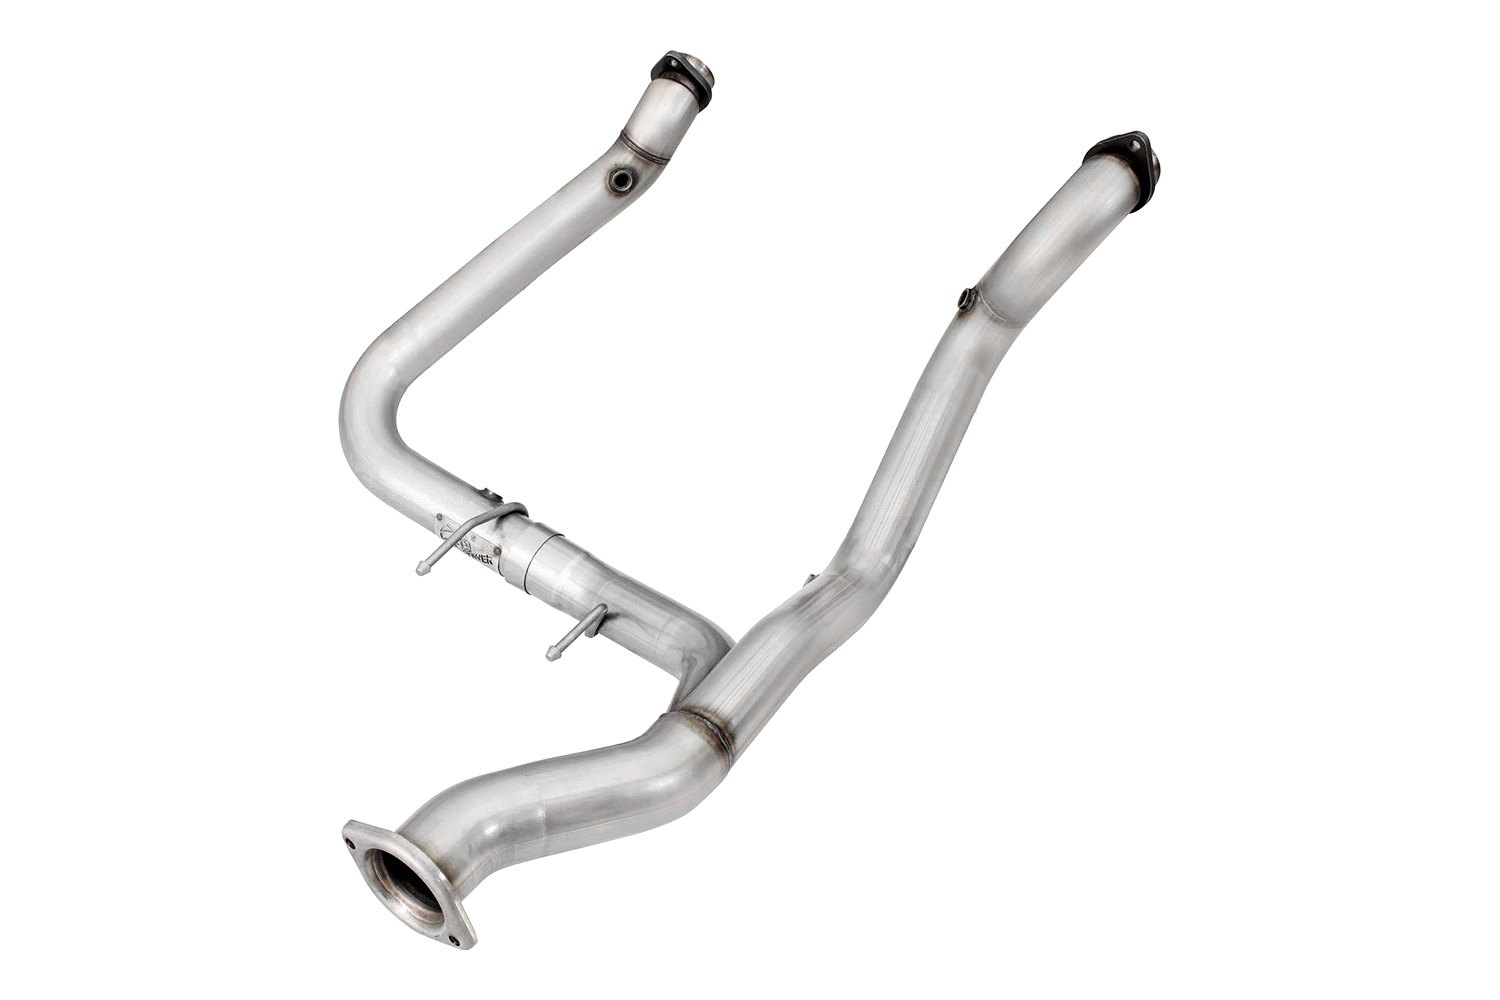 191125821868 also 610979 1996 Ls400 Undercarriage Picture Of Stock Exhaust moreover Genuine Porsche Parts Oem Accessories Html likewise Showthread besides 400939091680. on catalytic converter y pipe